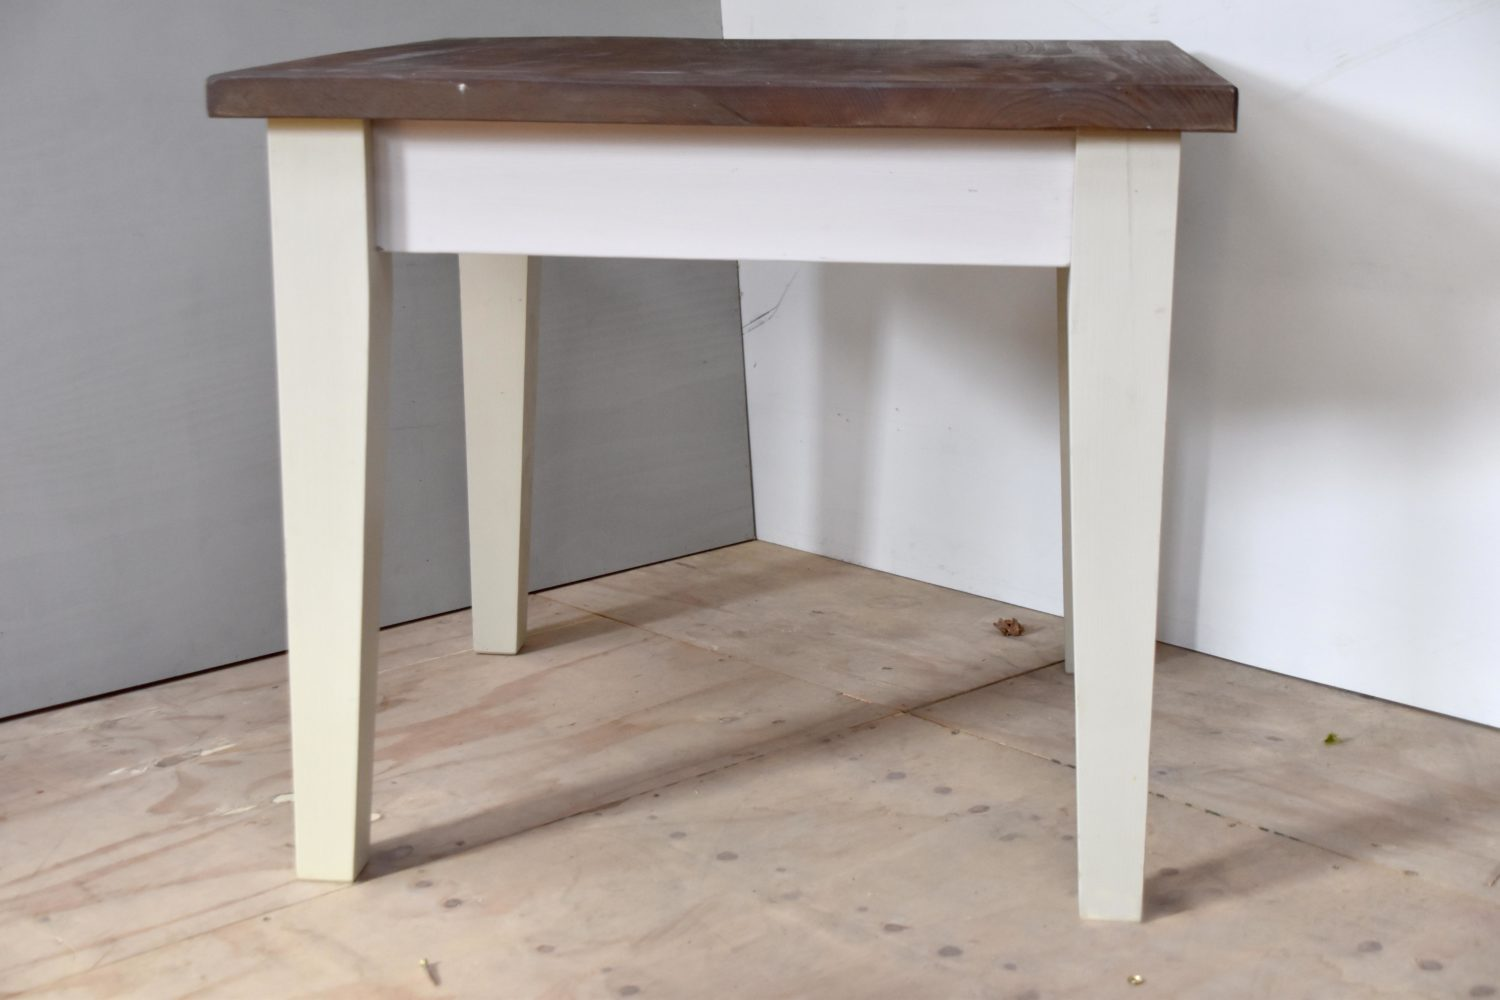 This four foot tapered leg table is hand painted in Farrow & Ball Cornforth White with a stained table top. Hand crafted by Mudd & Co.